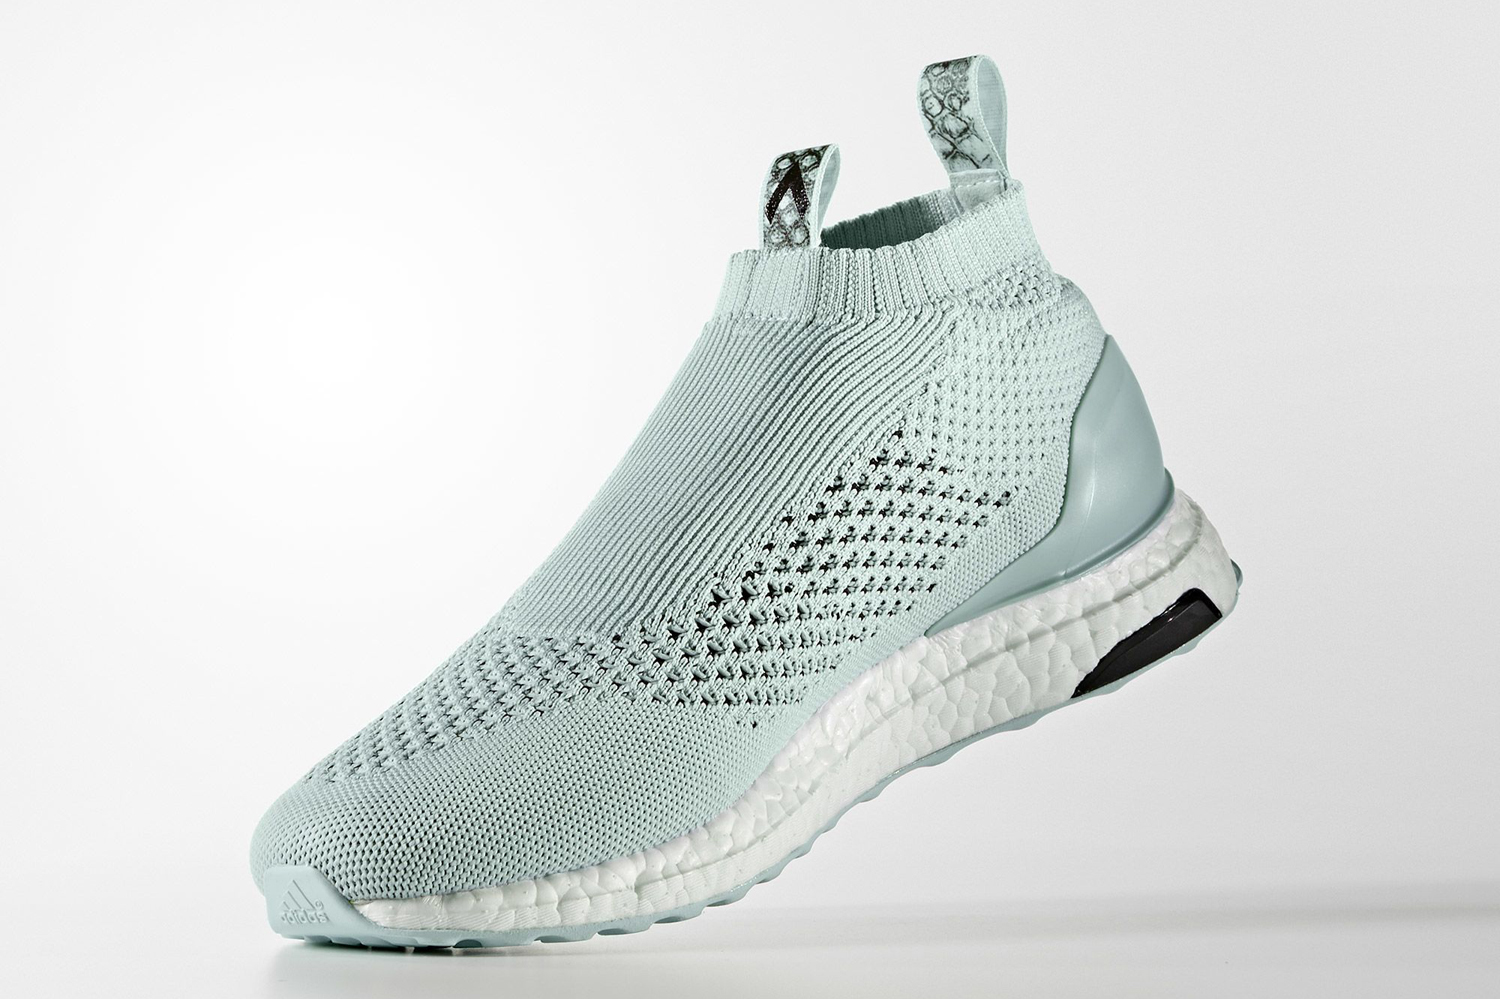 adidas ace 16 purecontrol ultraboost blue green